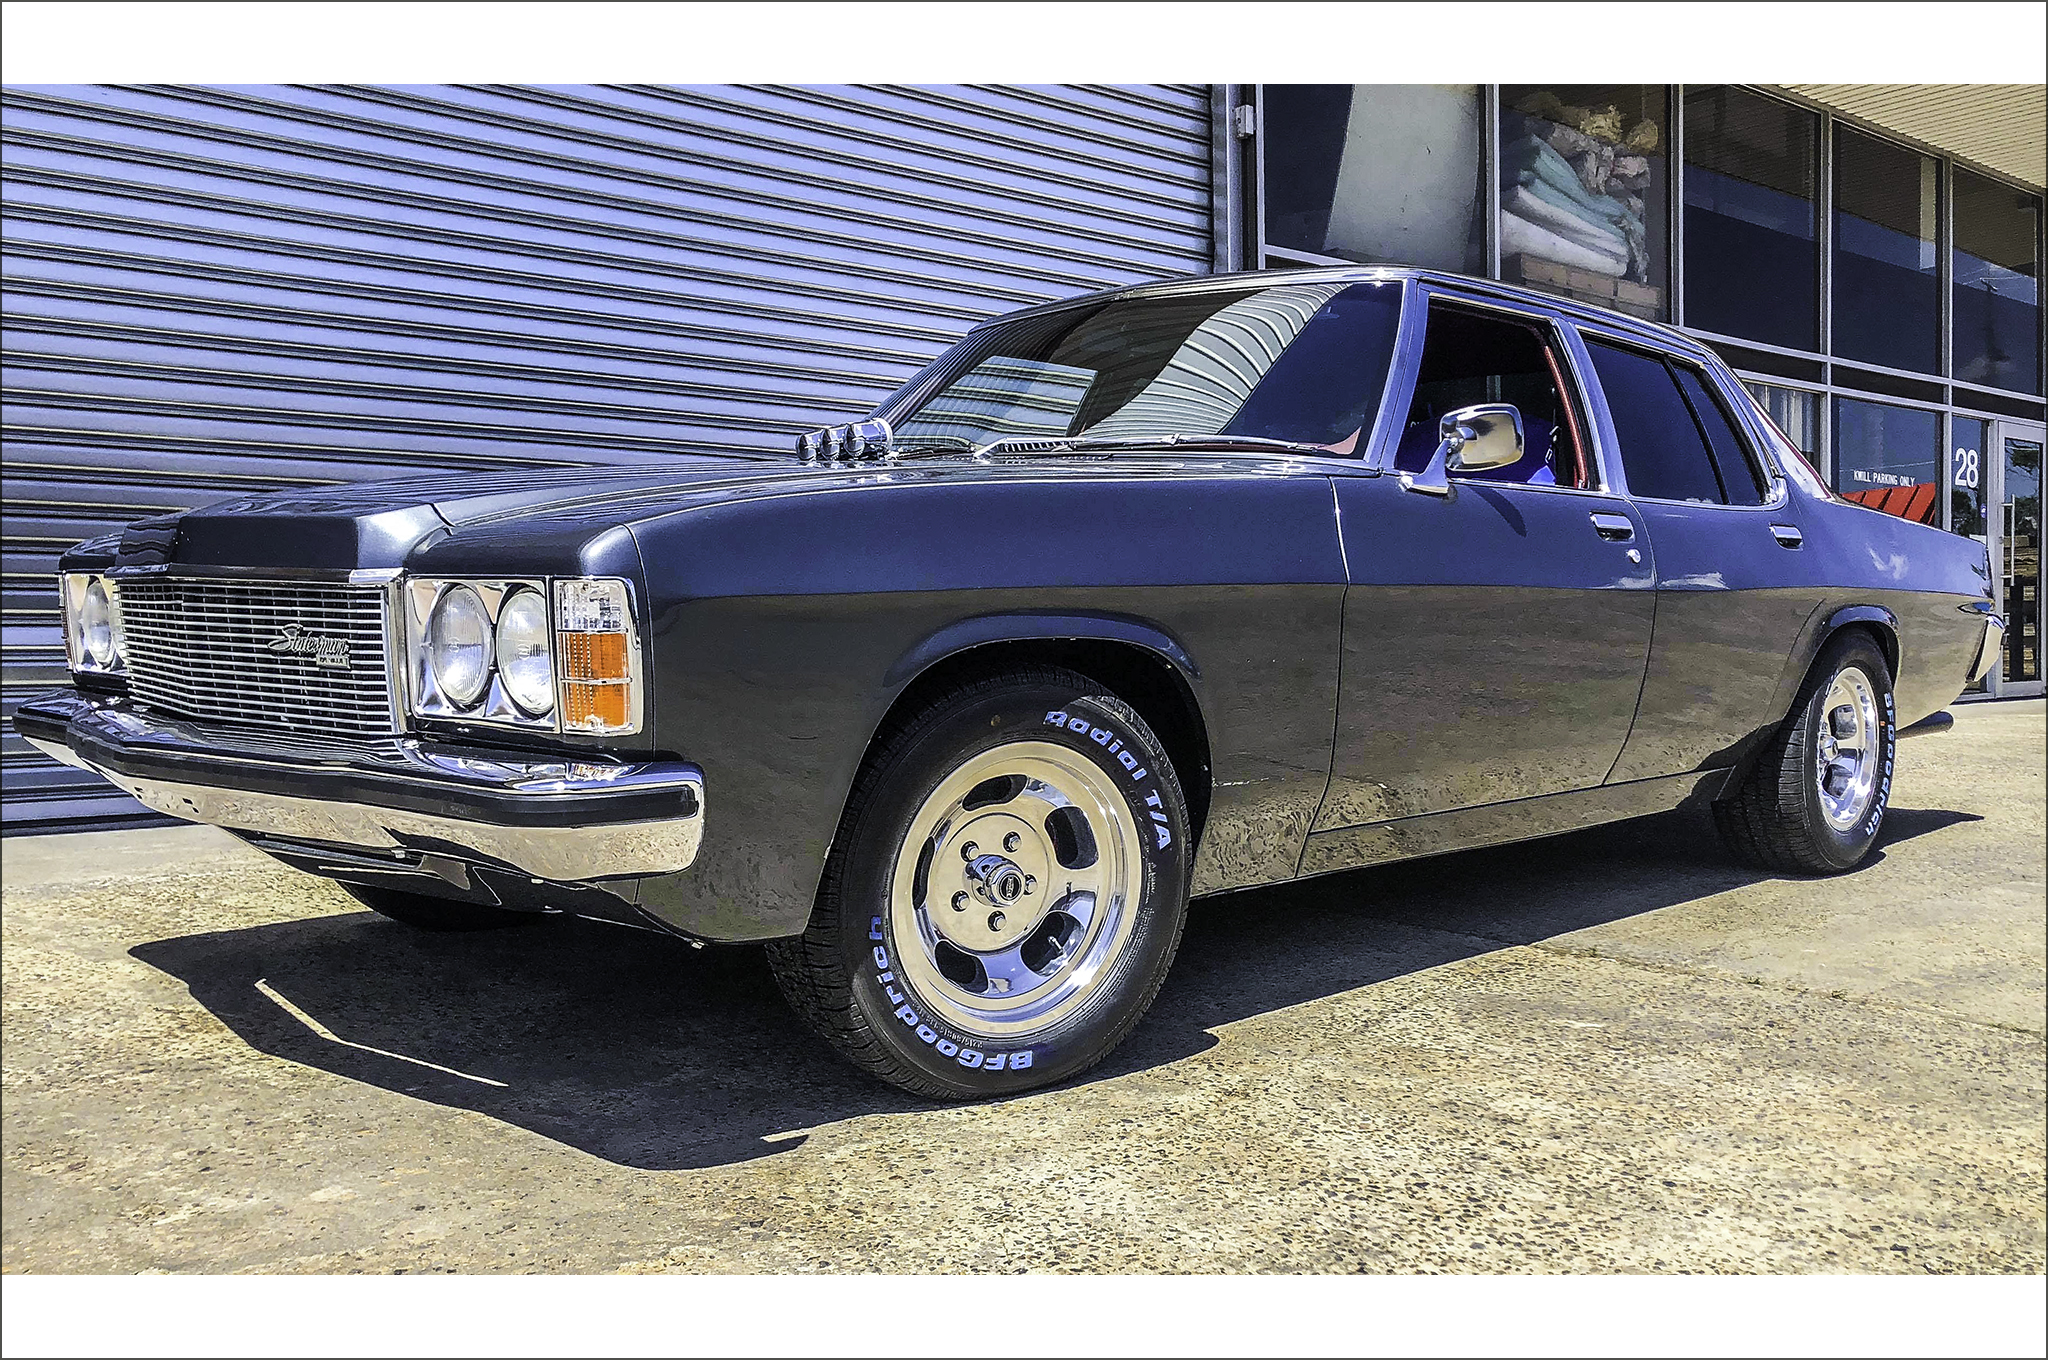 Holden Classic fitted with CTM Muscle Indy wheels